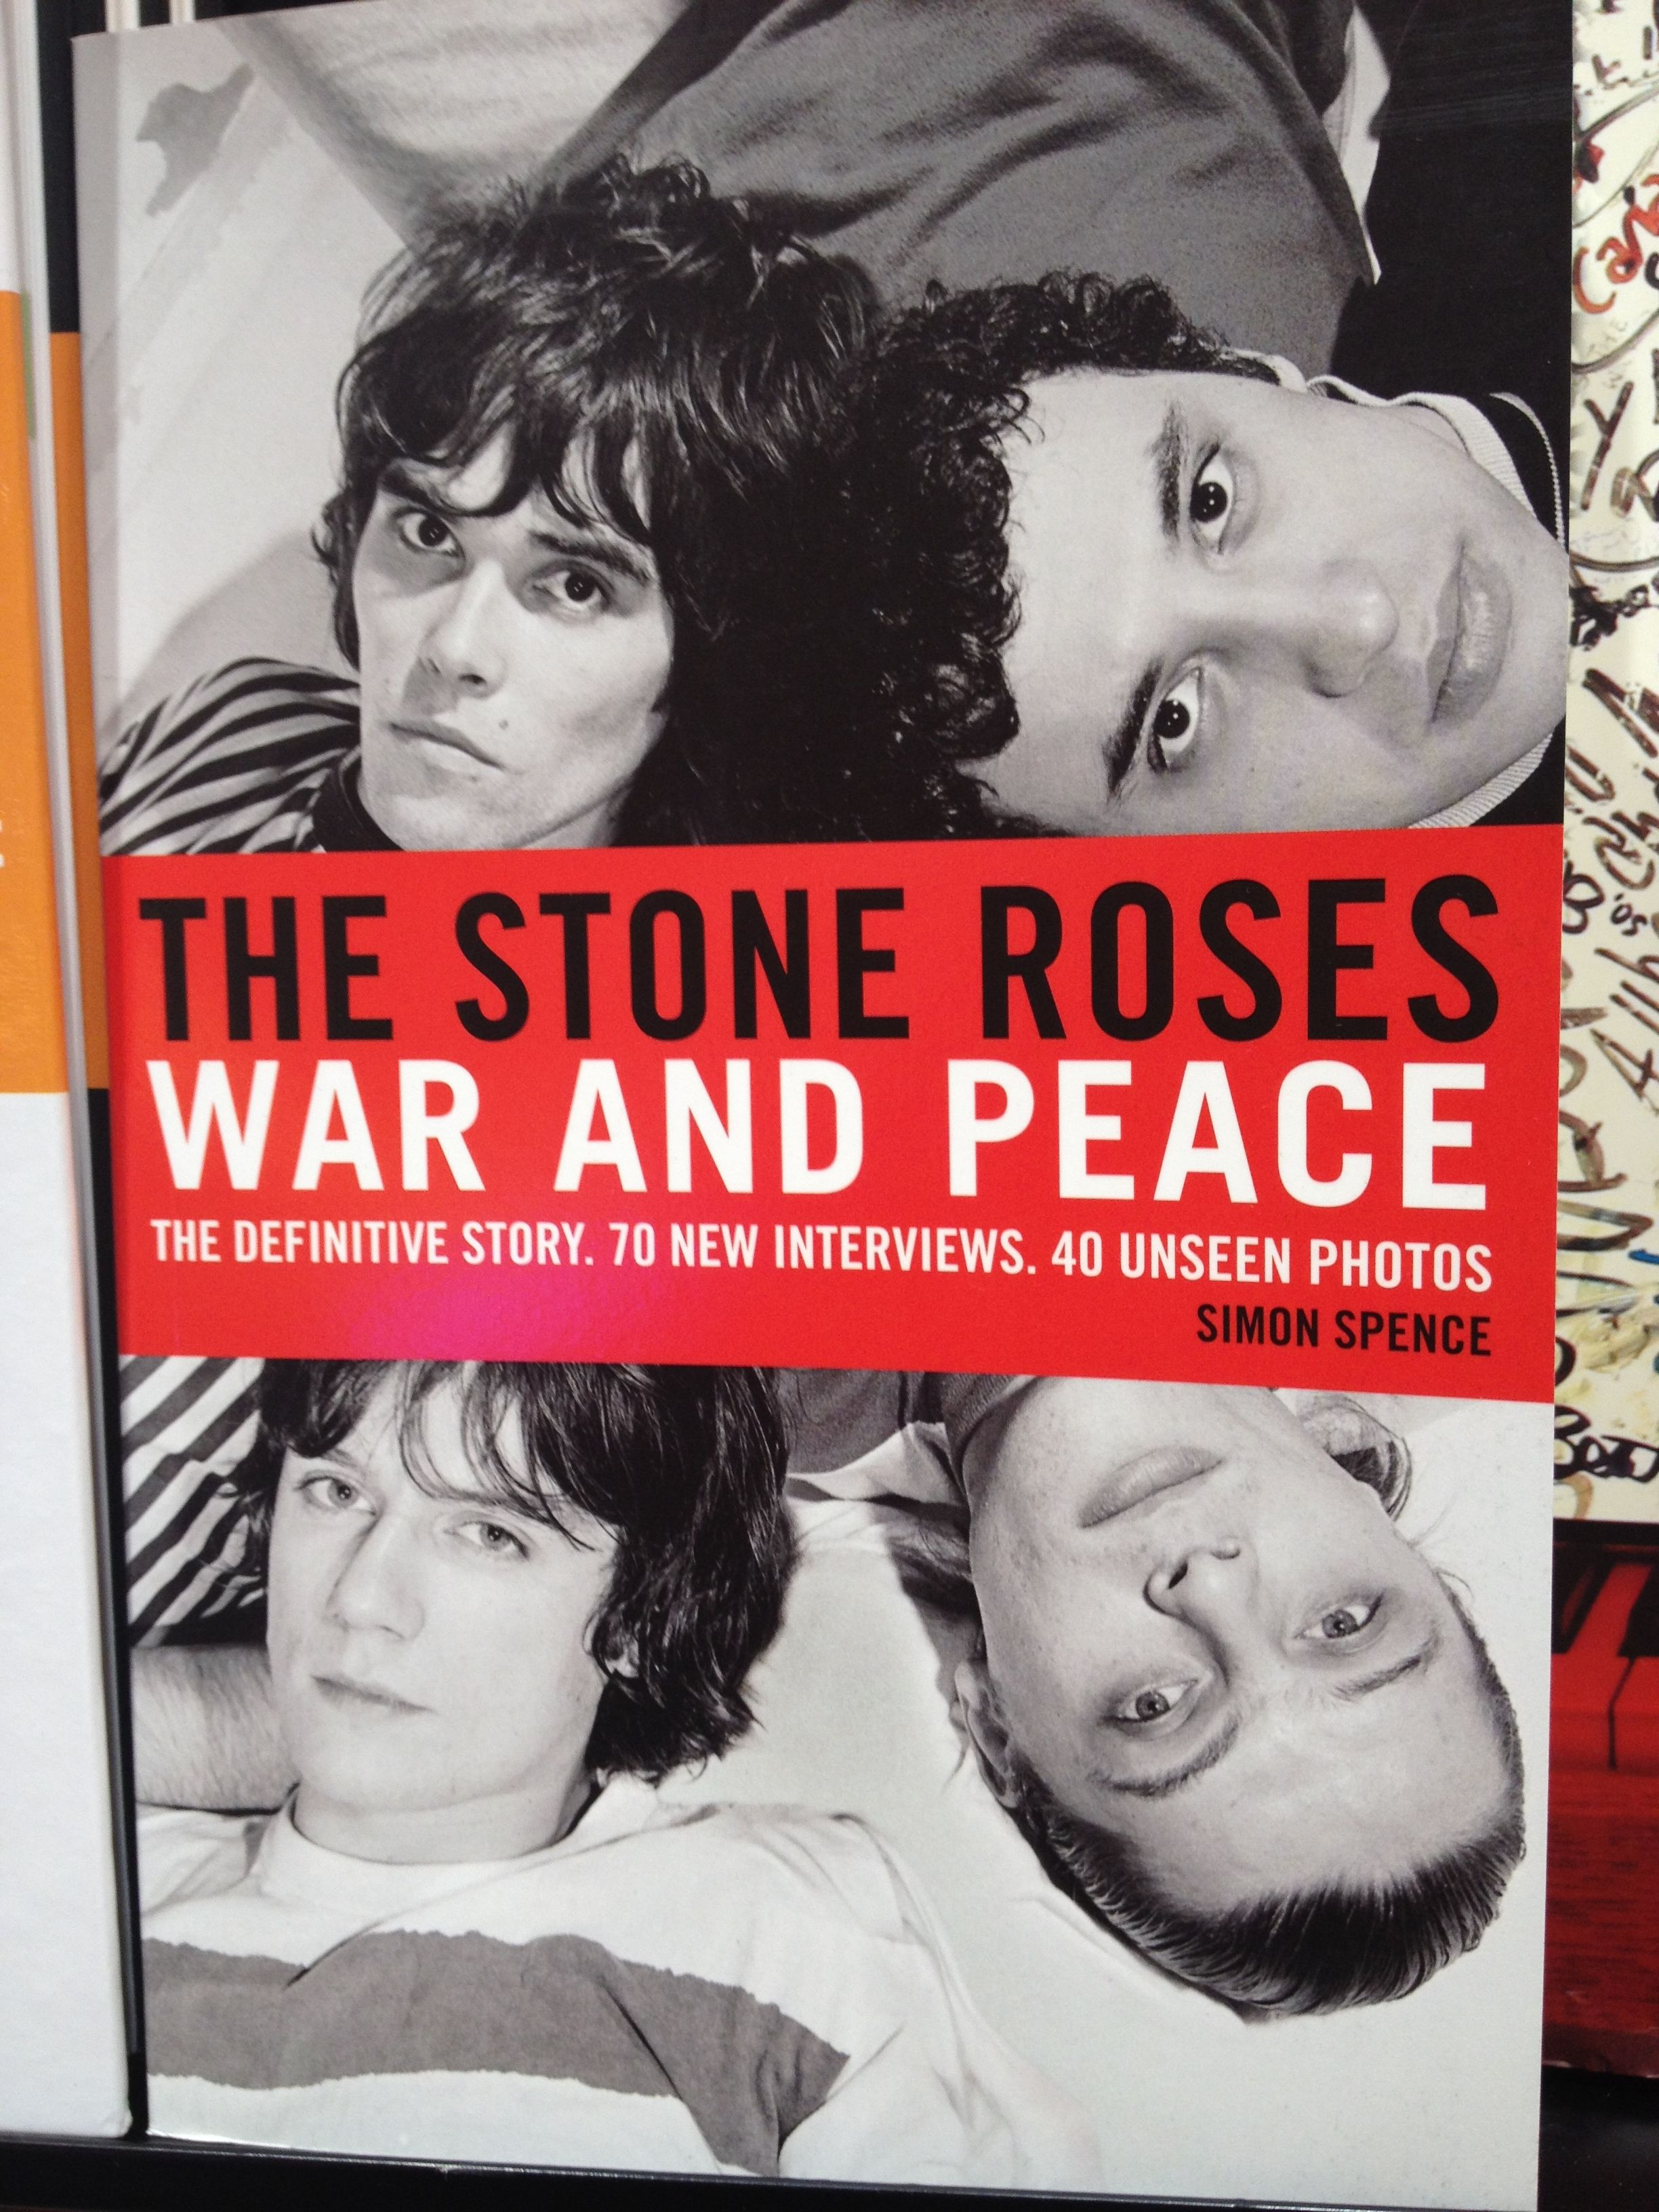 Libros Sobre Los Beatles War And Peace The Stone Roses Book Books Worth Reading